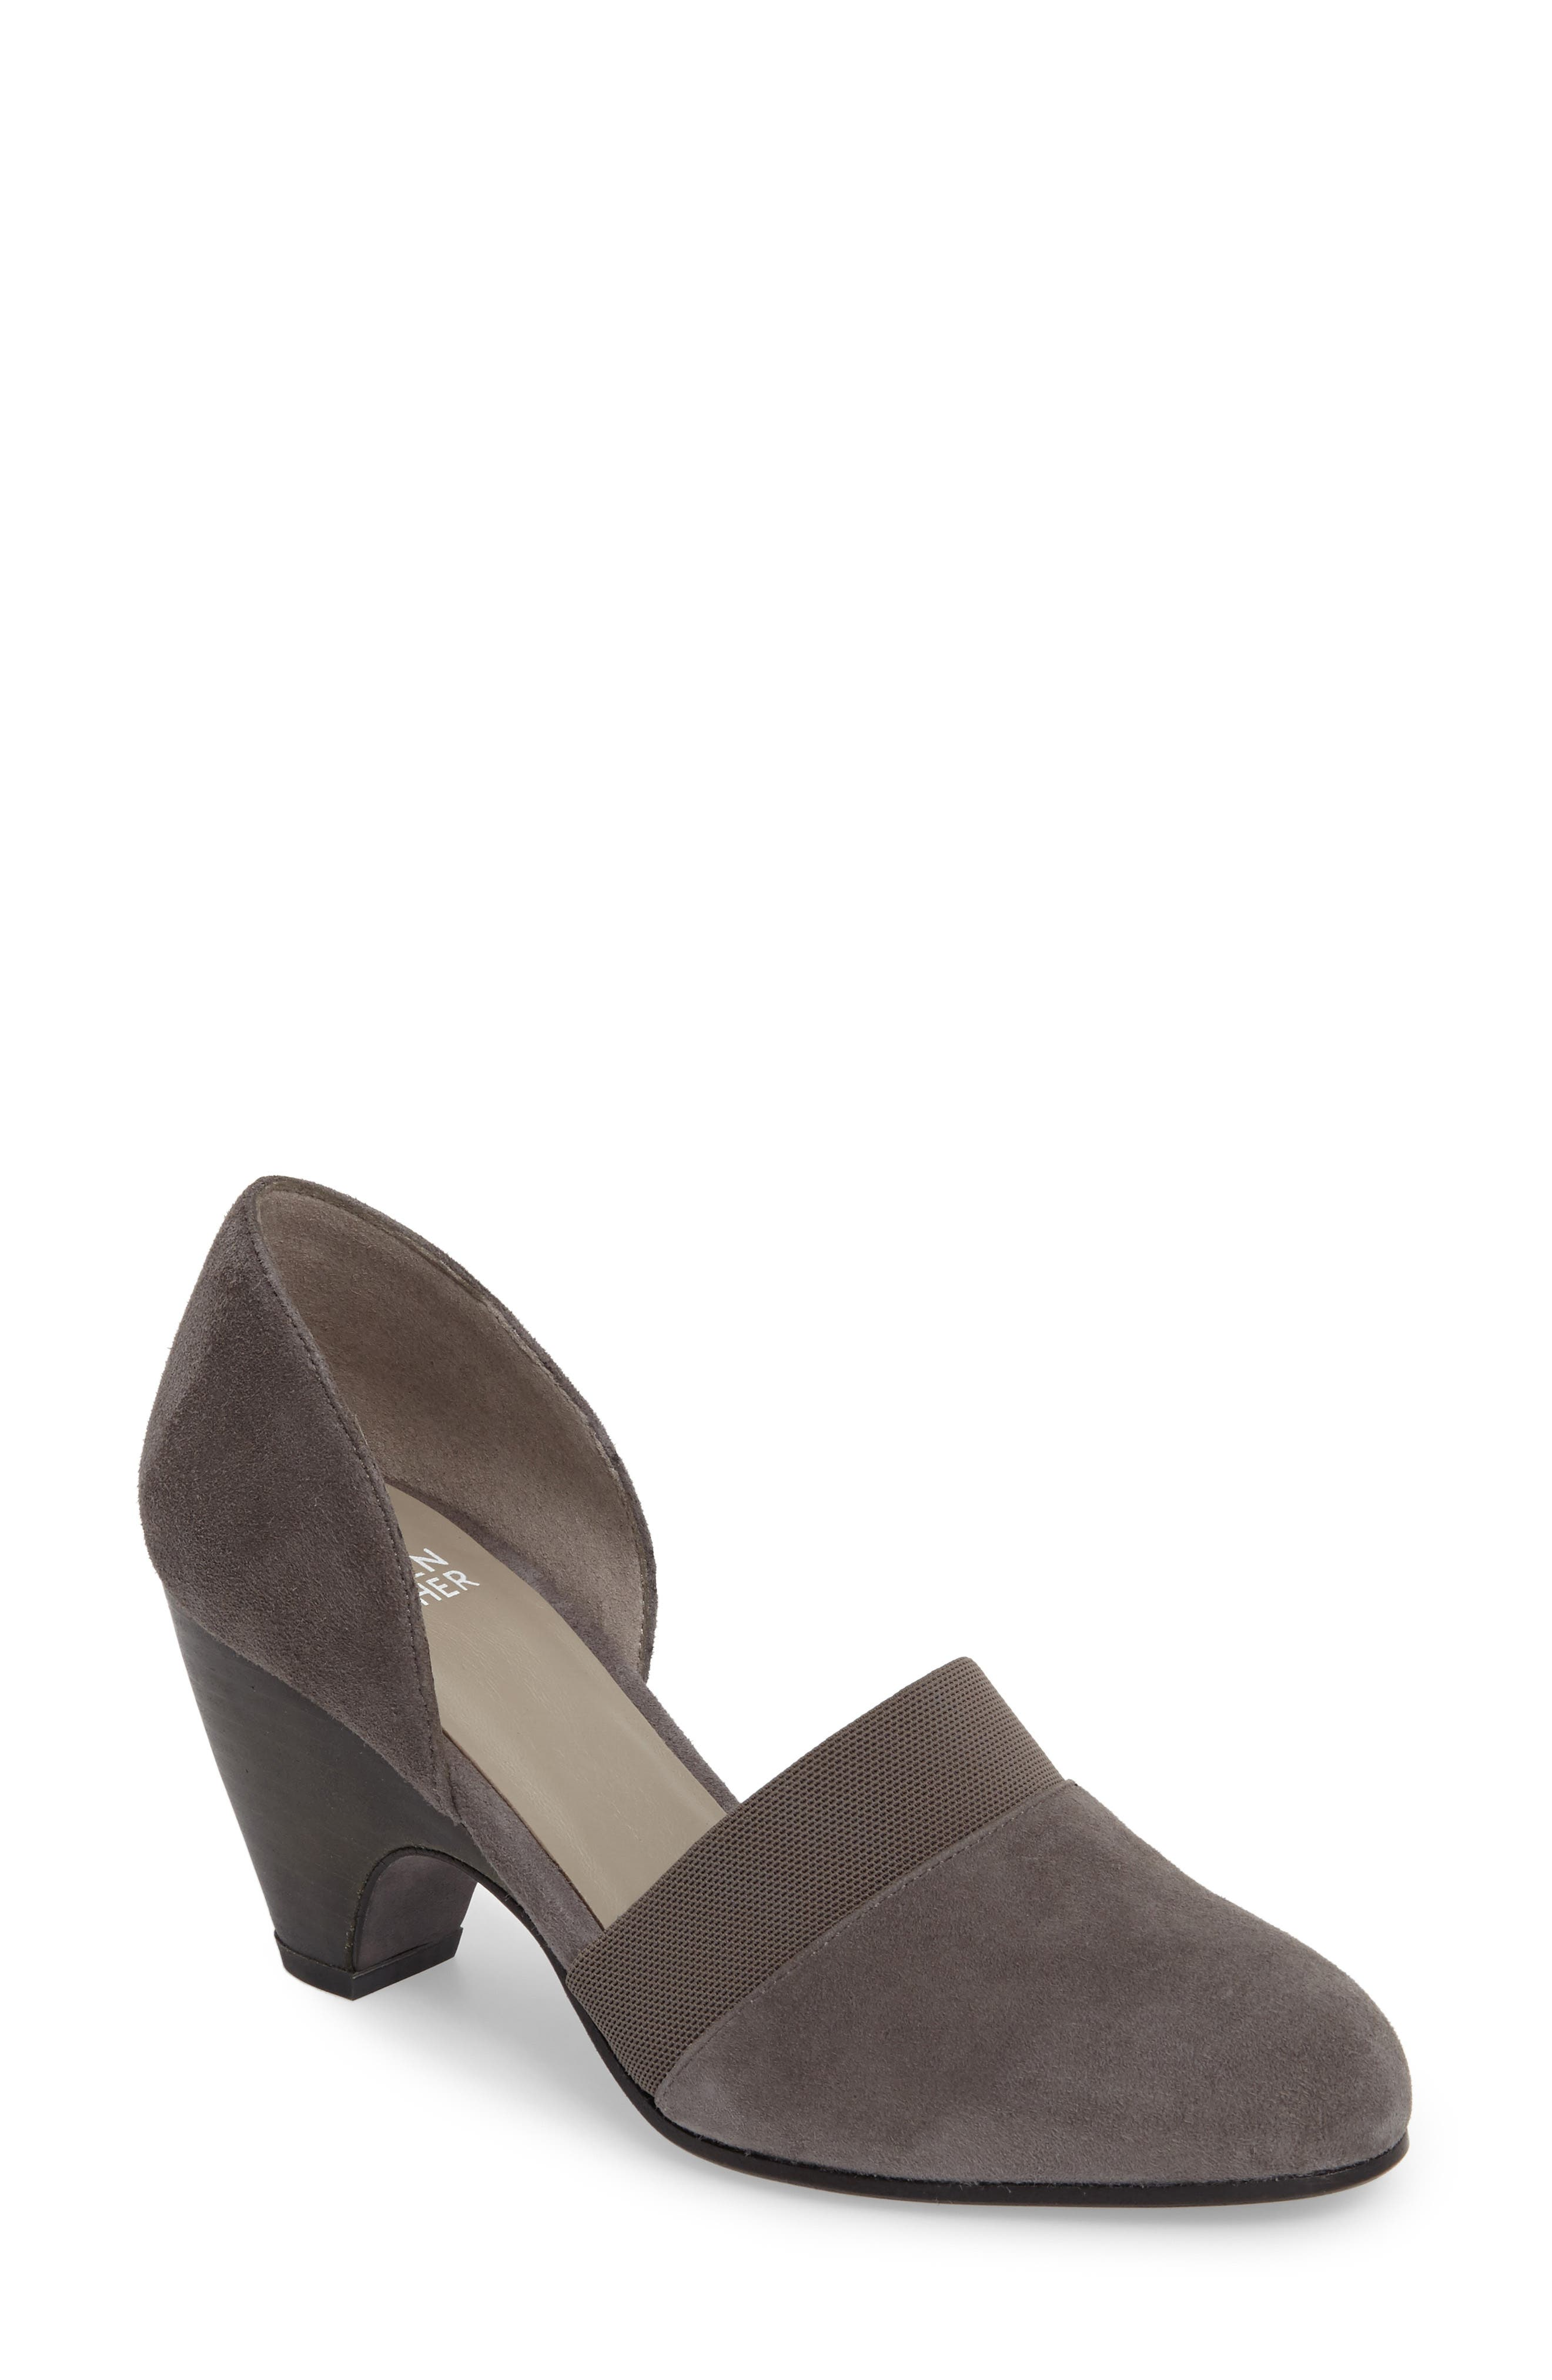 Alternate Image 1 Selected - Eileen Fisher Bailey d'Orsay Pump (Women)